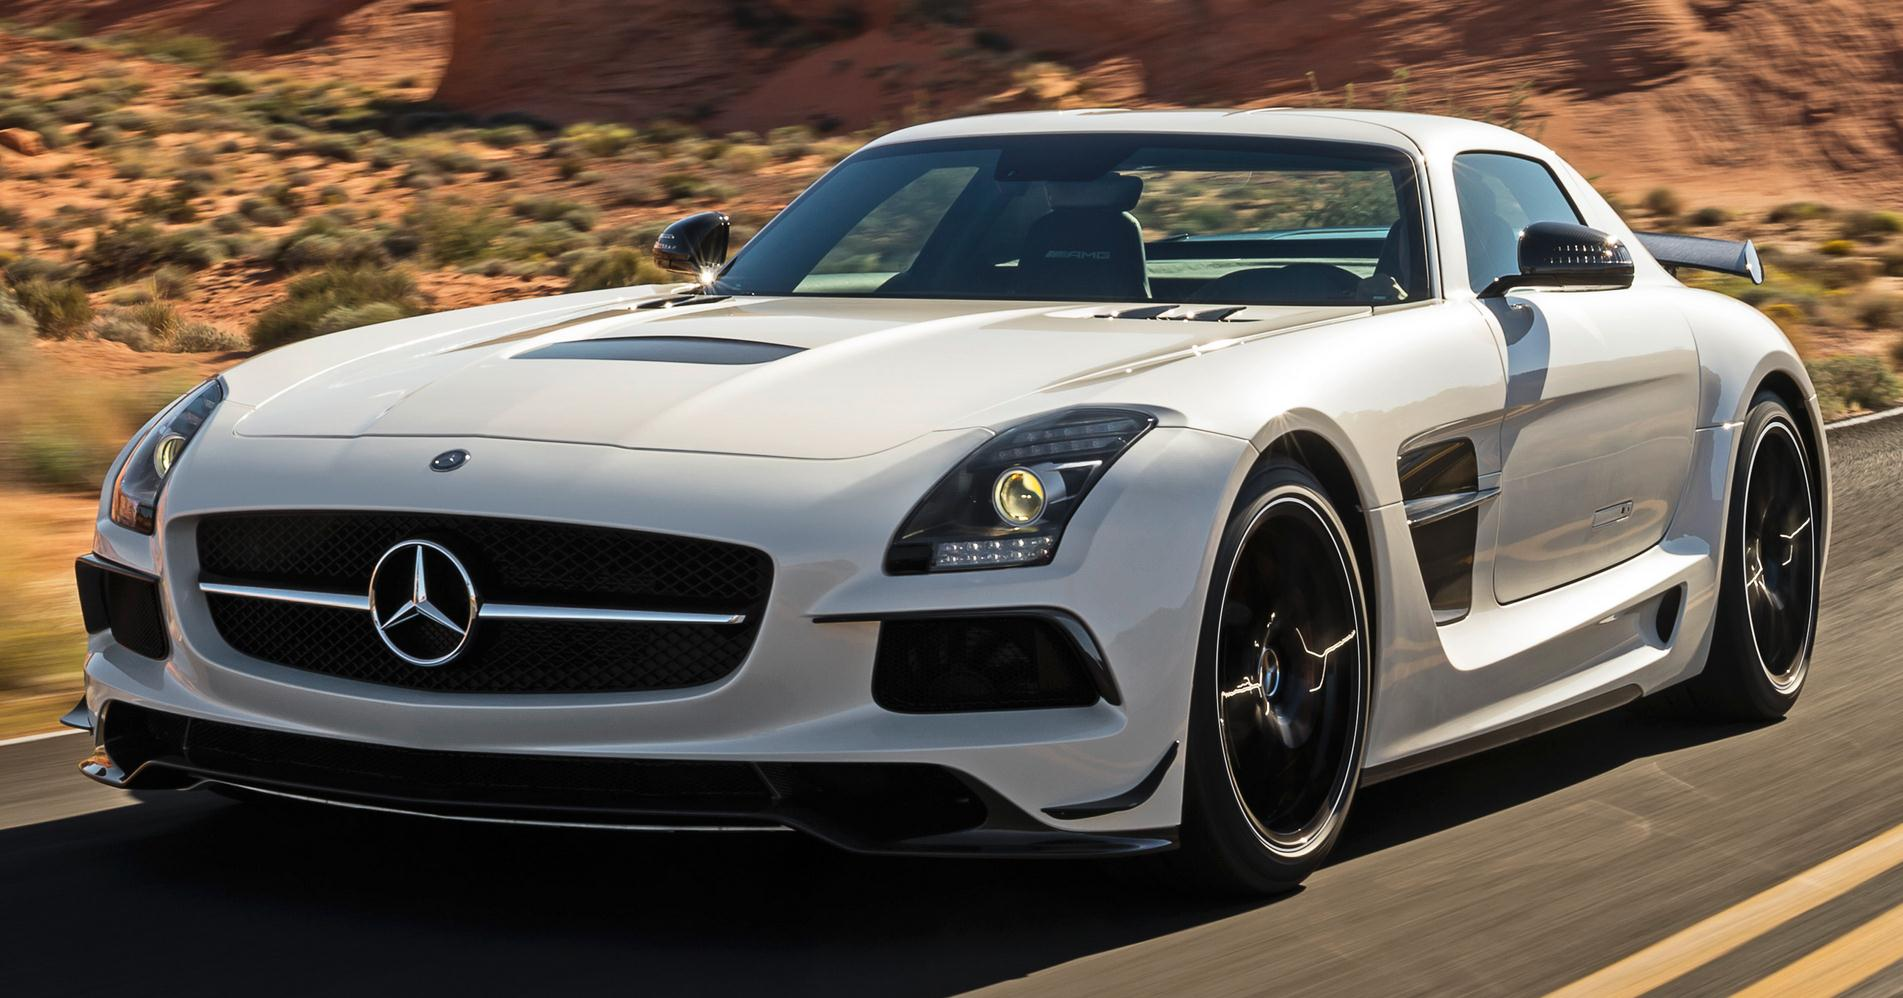 Mercedes benz sports car photos classic car wallpaper hd for Mercedes benz of greensboro used cars